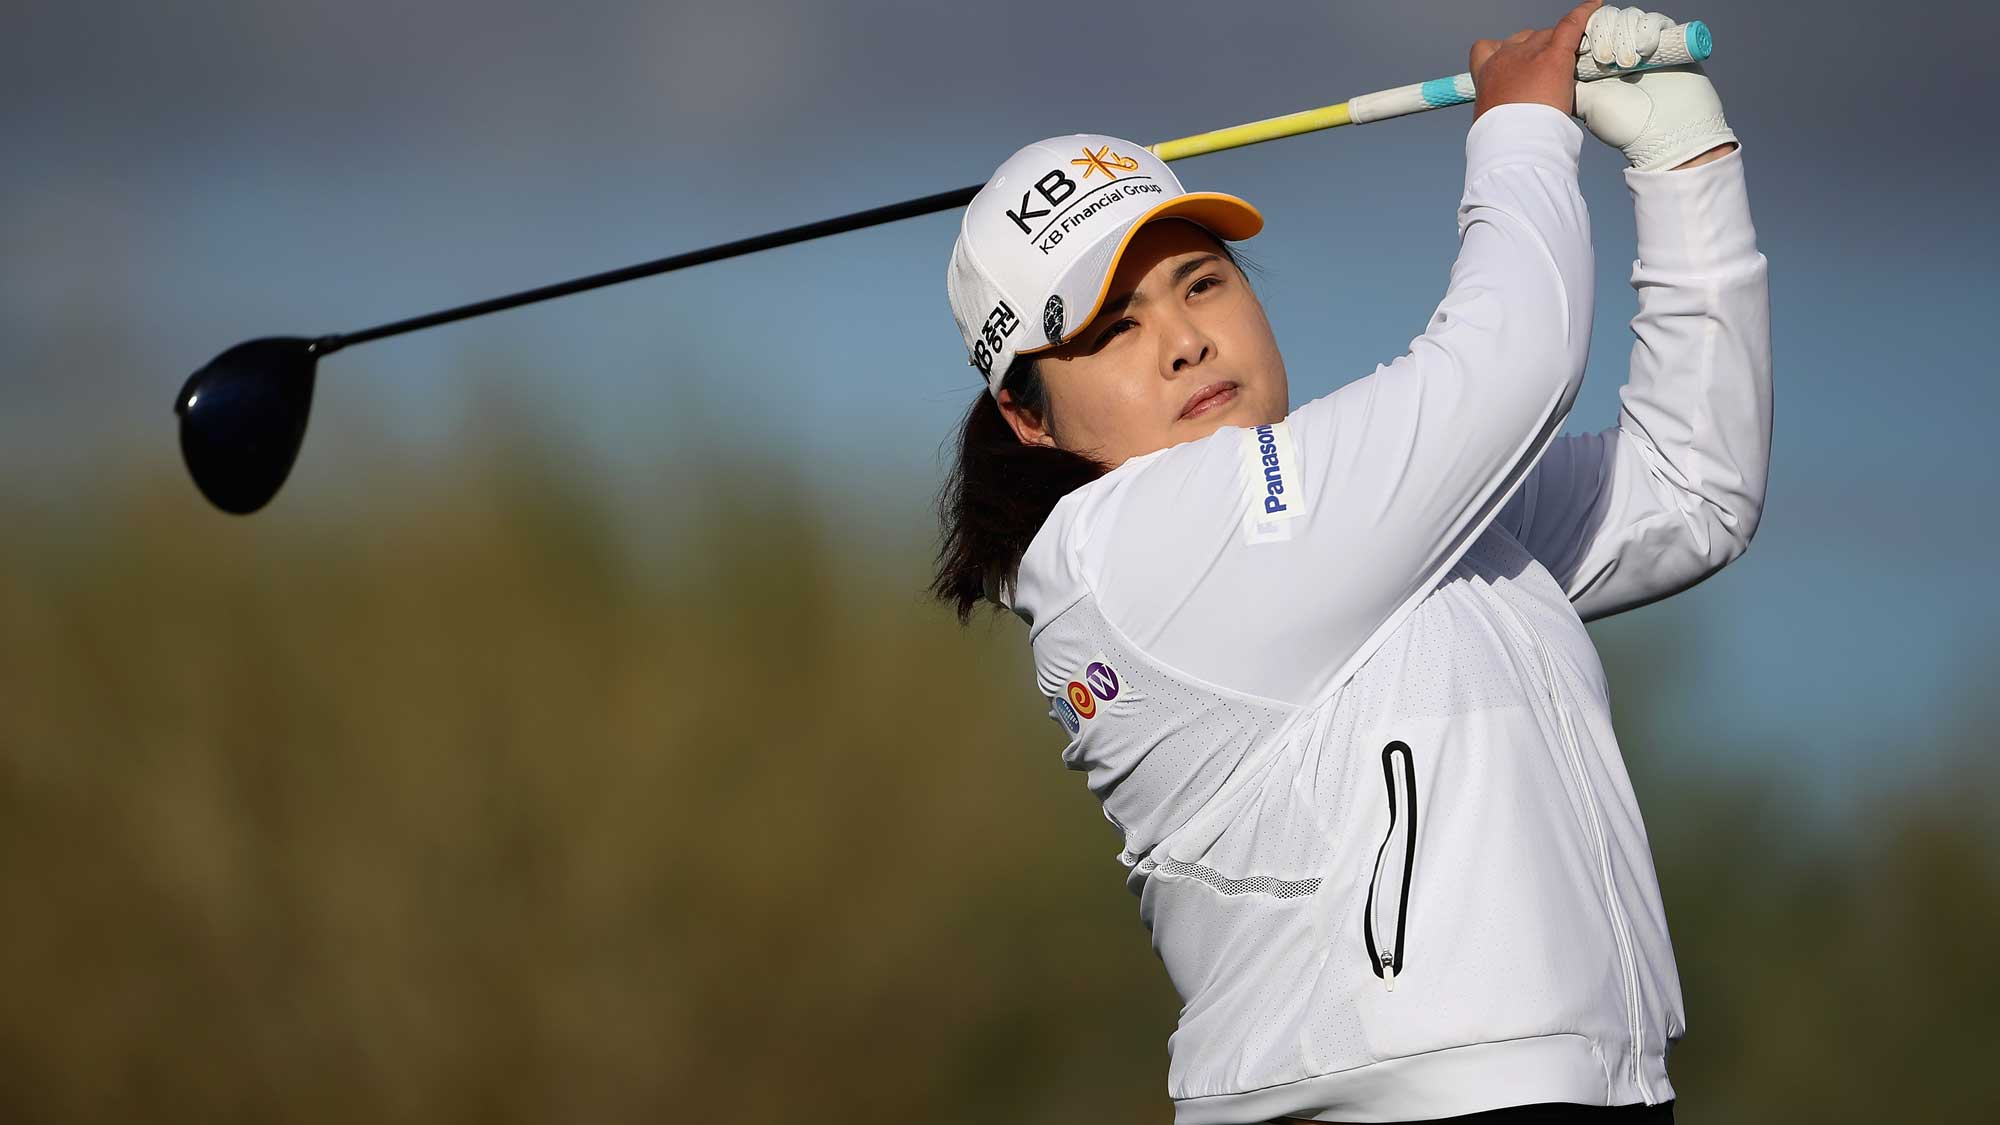 Inbee Park Swings in Round One of Founders Cup